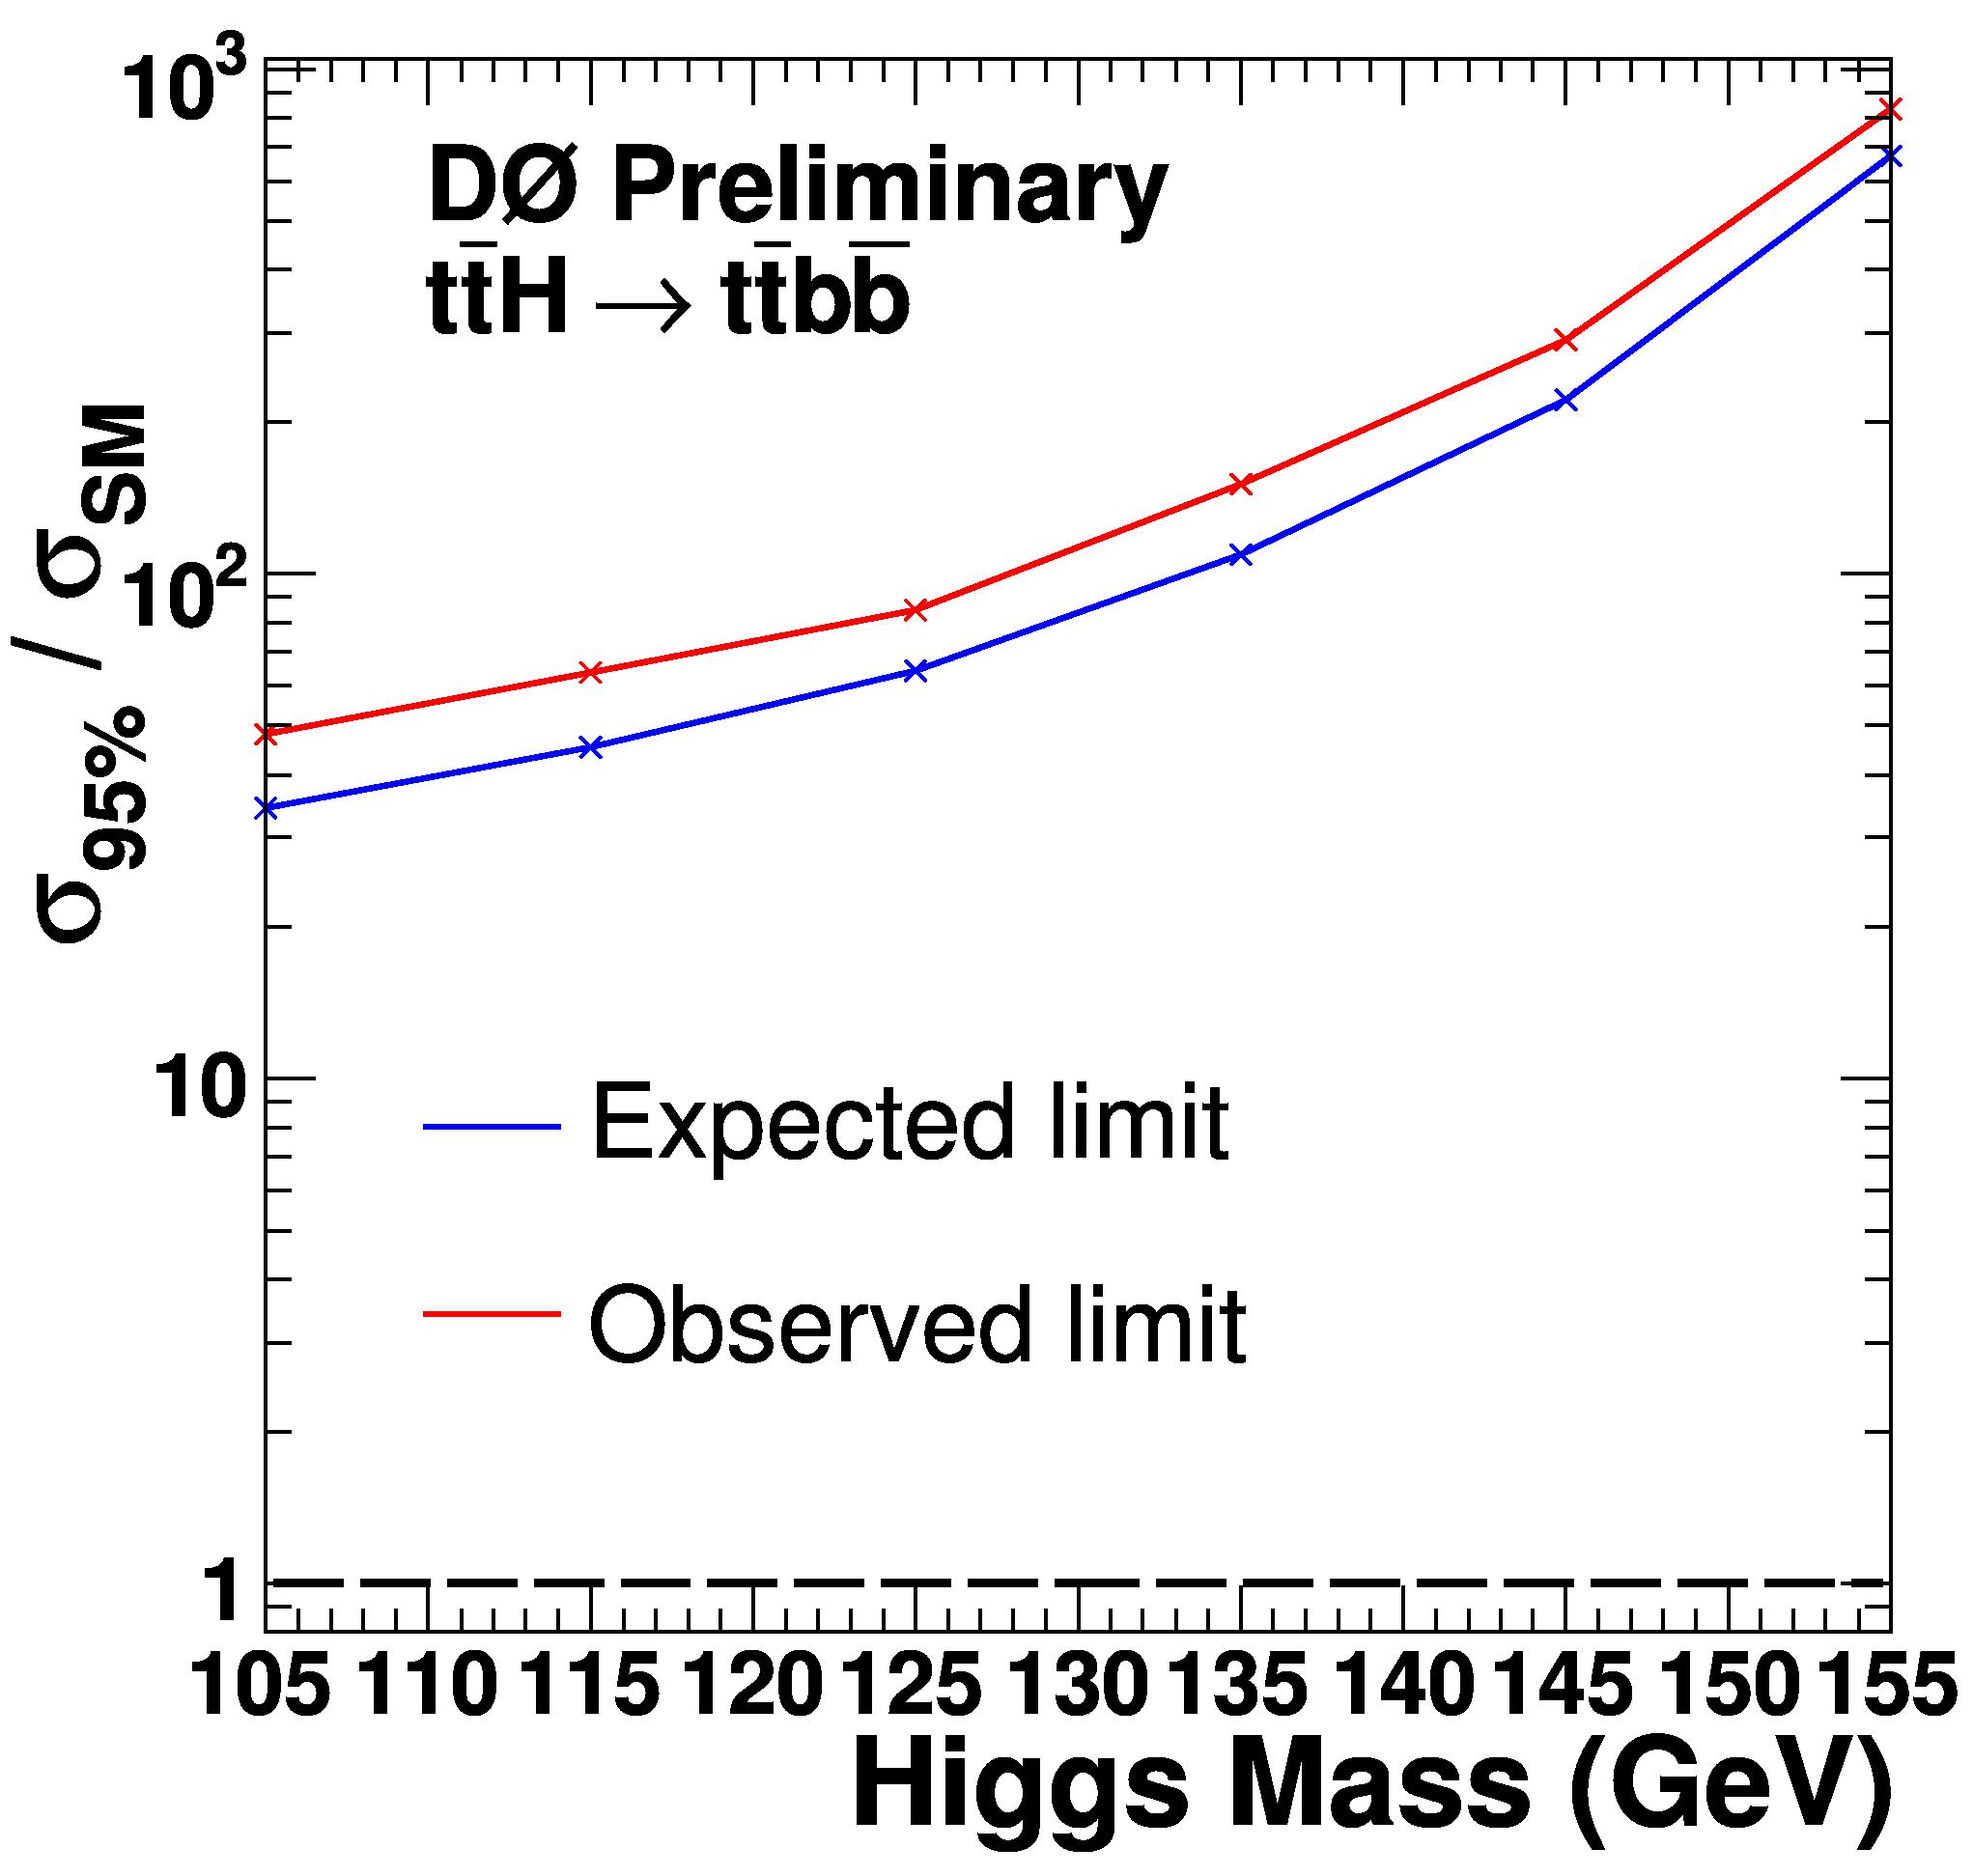 limit on tth production from the DZERO search